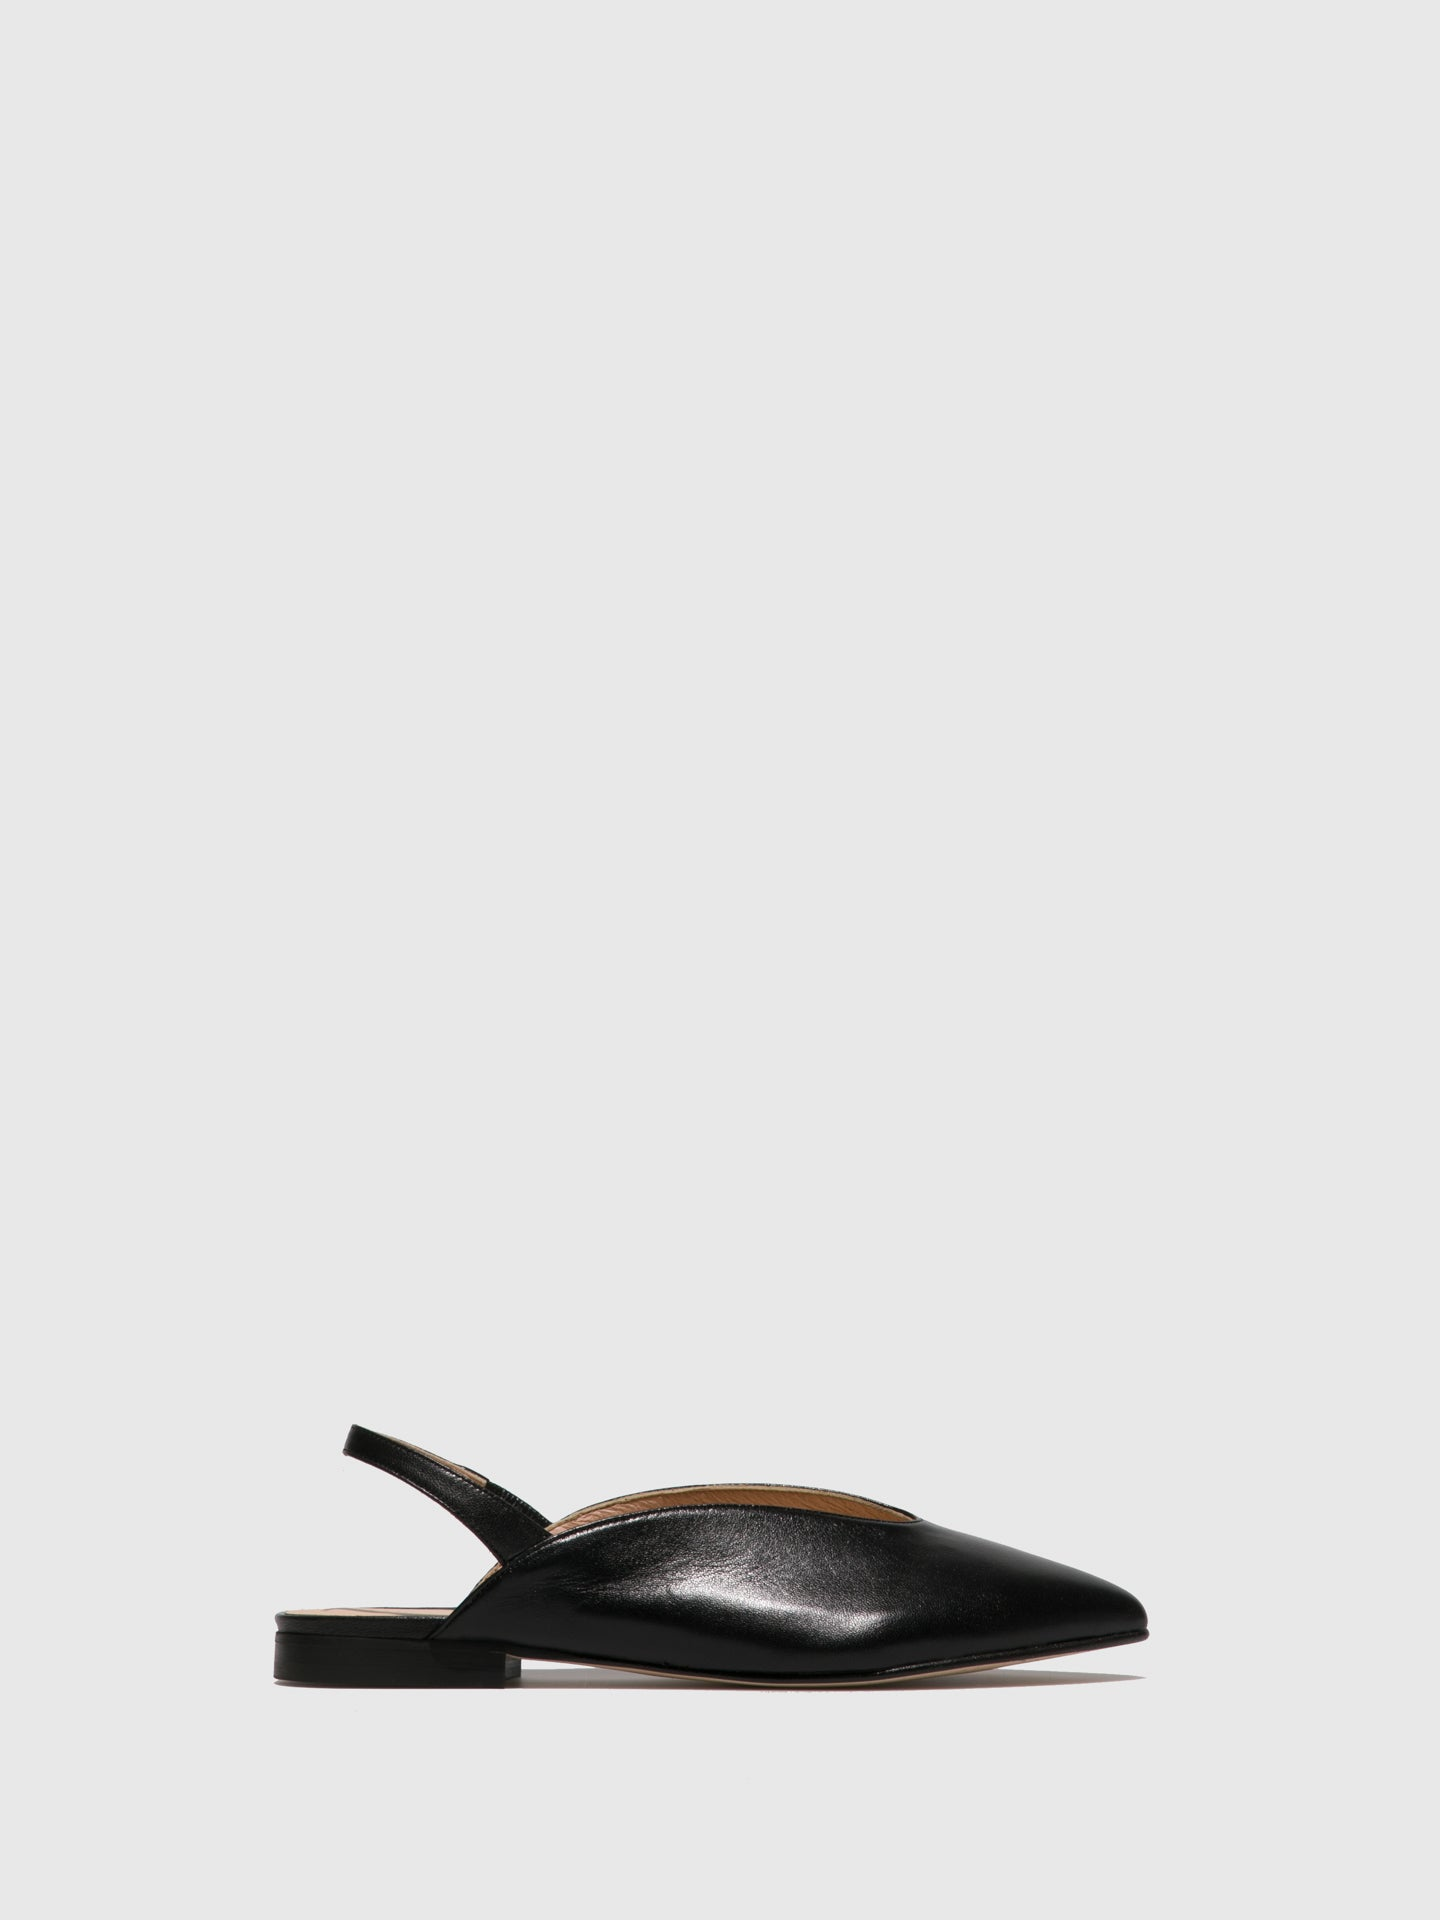 Sofia Costa Black Pointed Toe Shoes